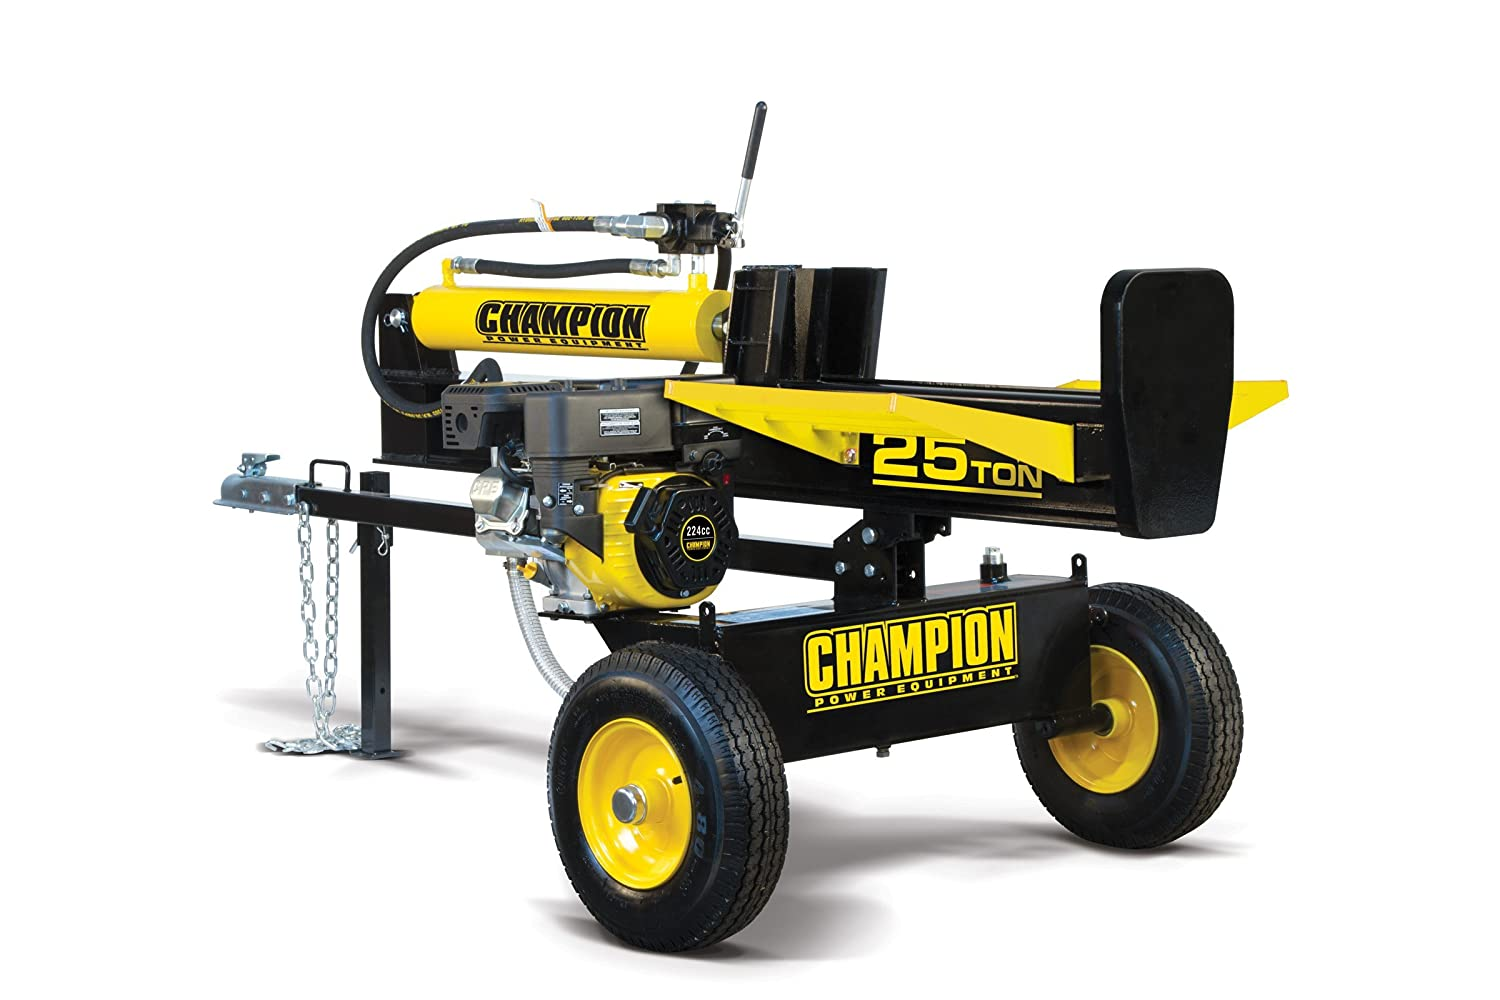 Champion Power Equipment 100251 25 Ton Full Beam Towable Log Splitter